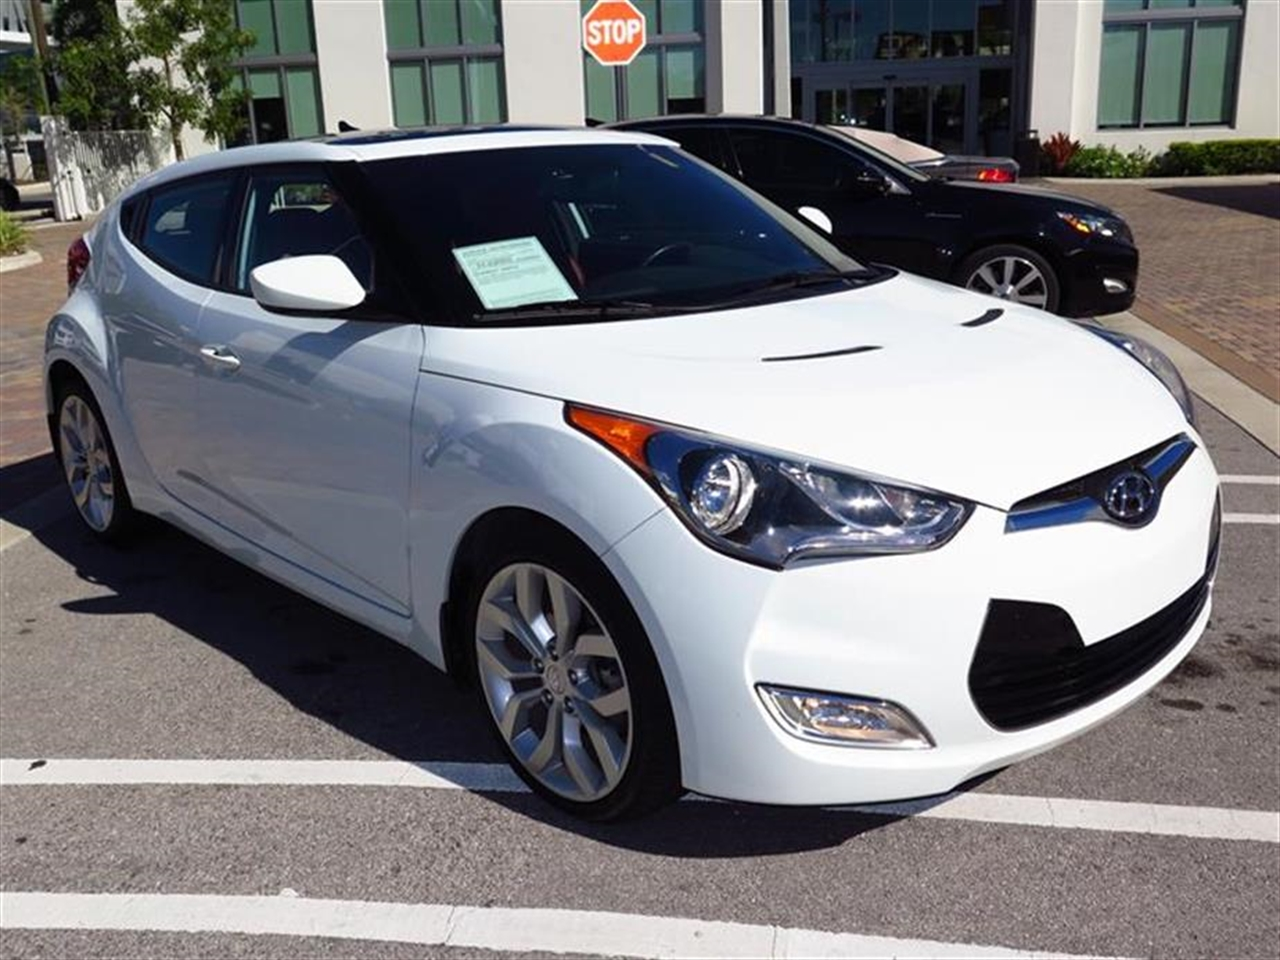 2013 HYUNDAI VELOSTER 3dr Cpe Man wRed Int 28393 miles 2 12V outlets 6040 split folding rear